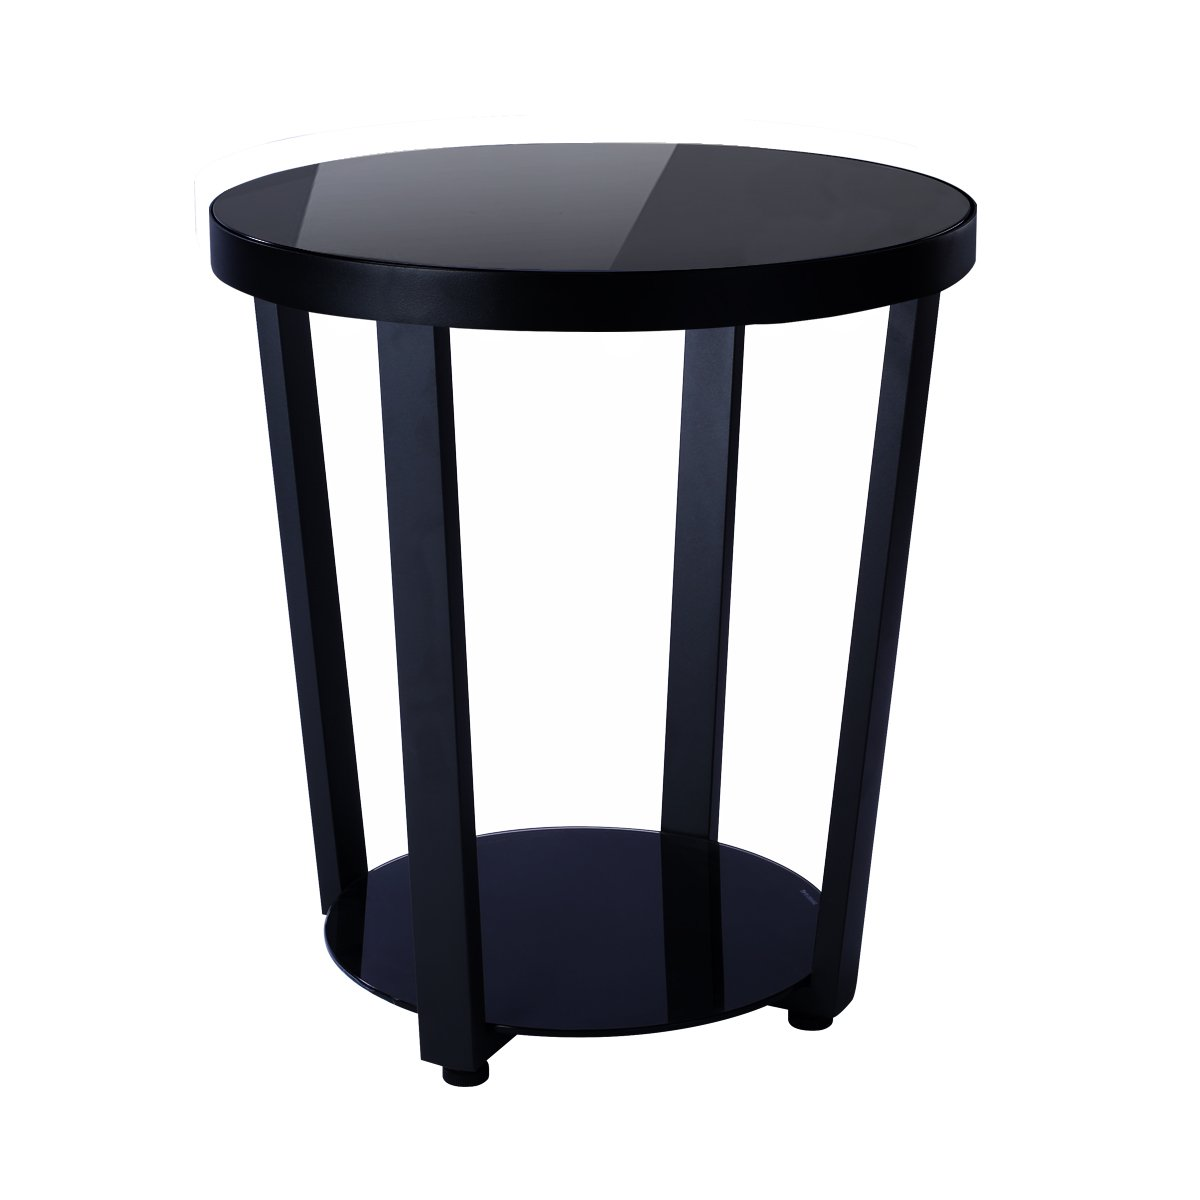 round glass top end table living room side winsome wood cassie accent with cappuccino finish coffee black kitchen dining pier one outdoor wicker furniture oval farmhouse skirting